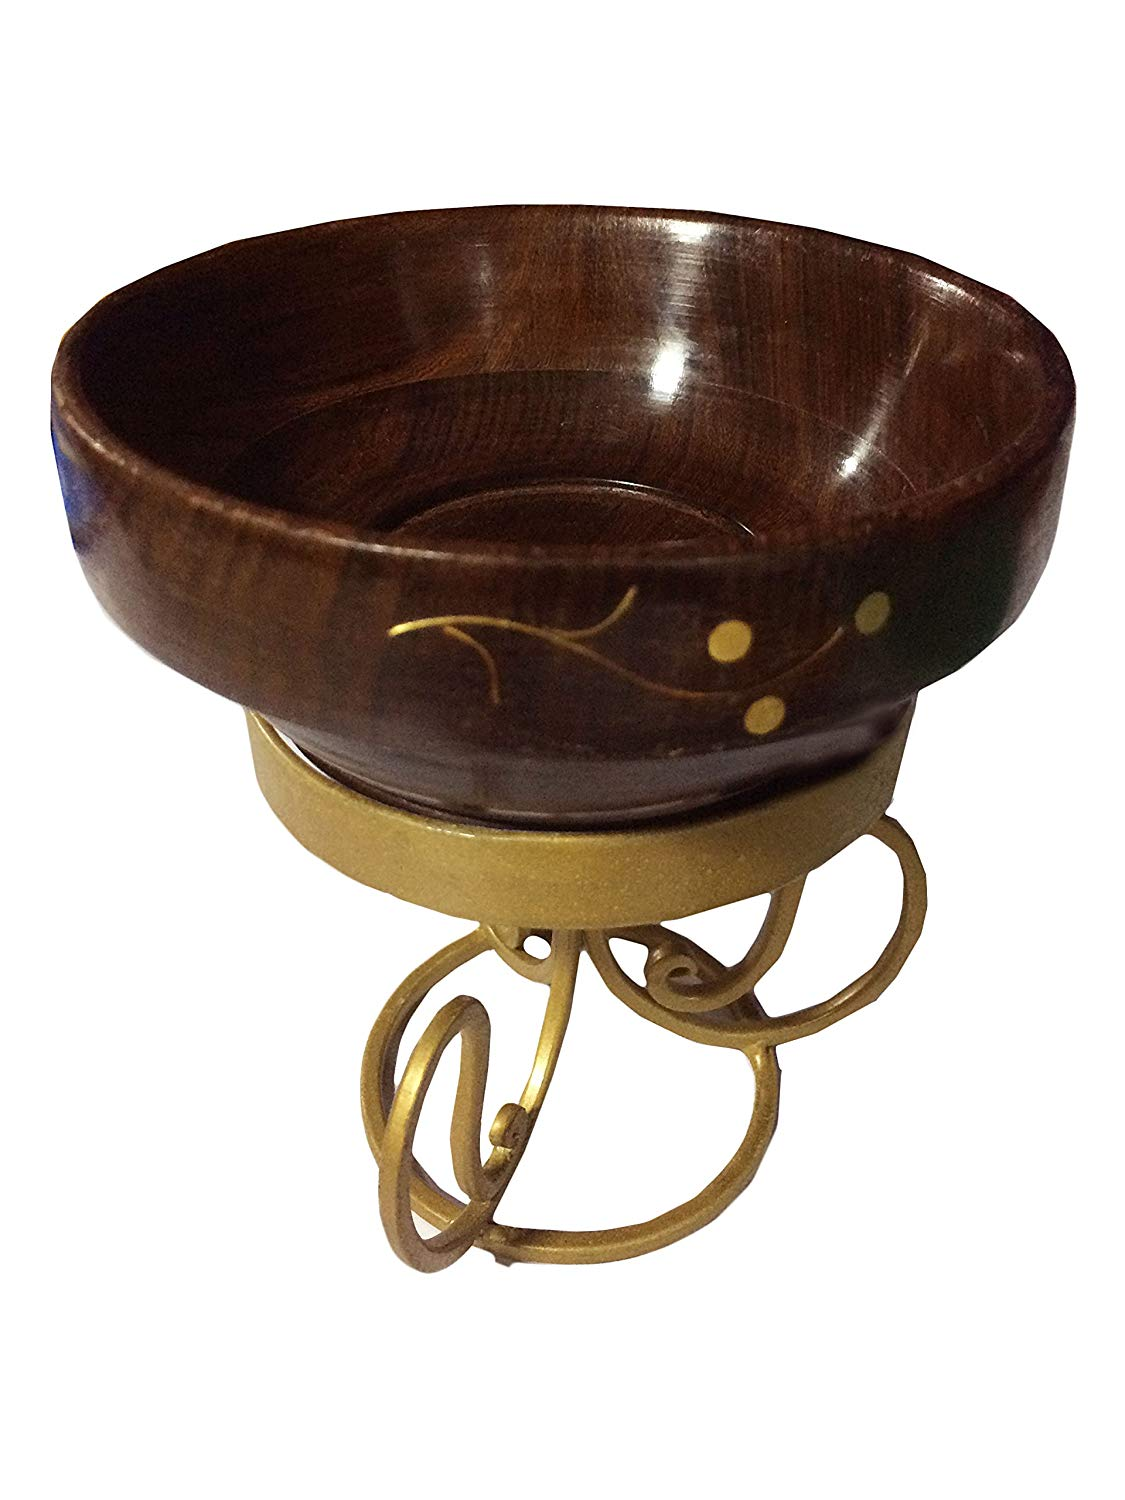 Get Quotations Wooden Handmade Bowl With Stand Inlay Work Serving Great For Fruit